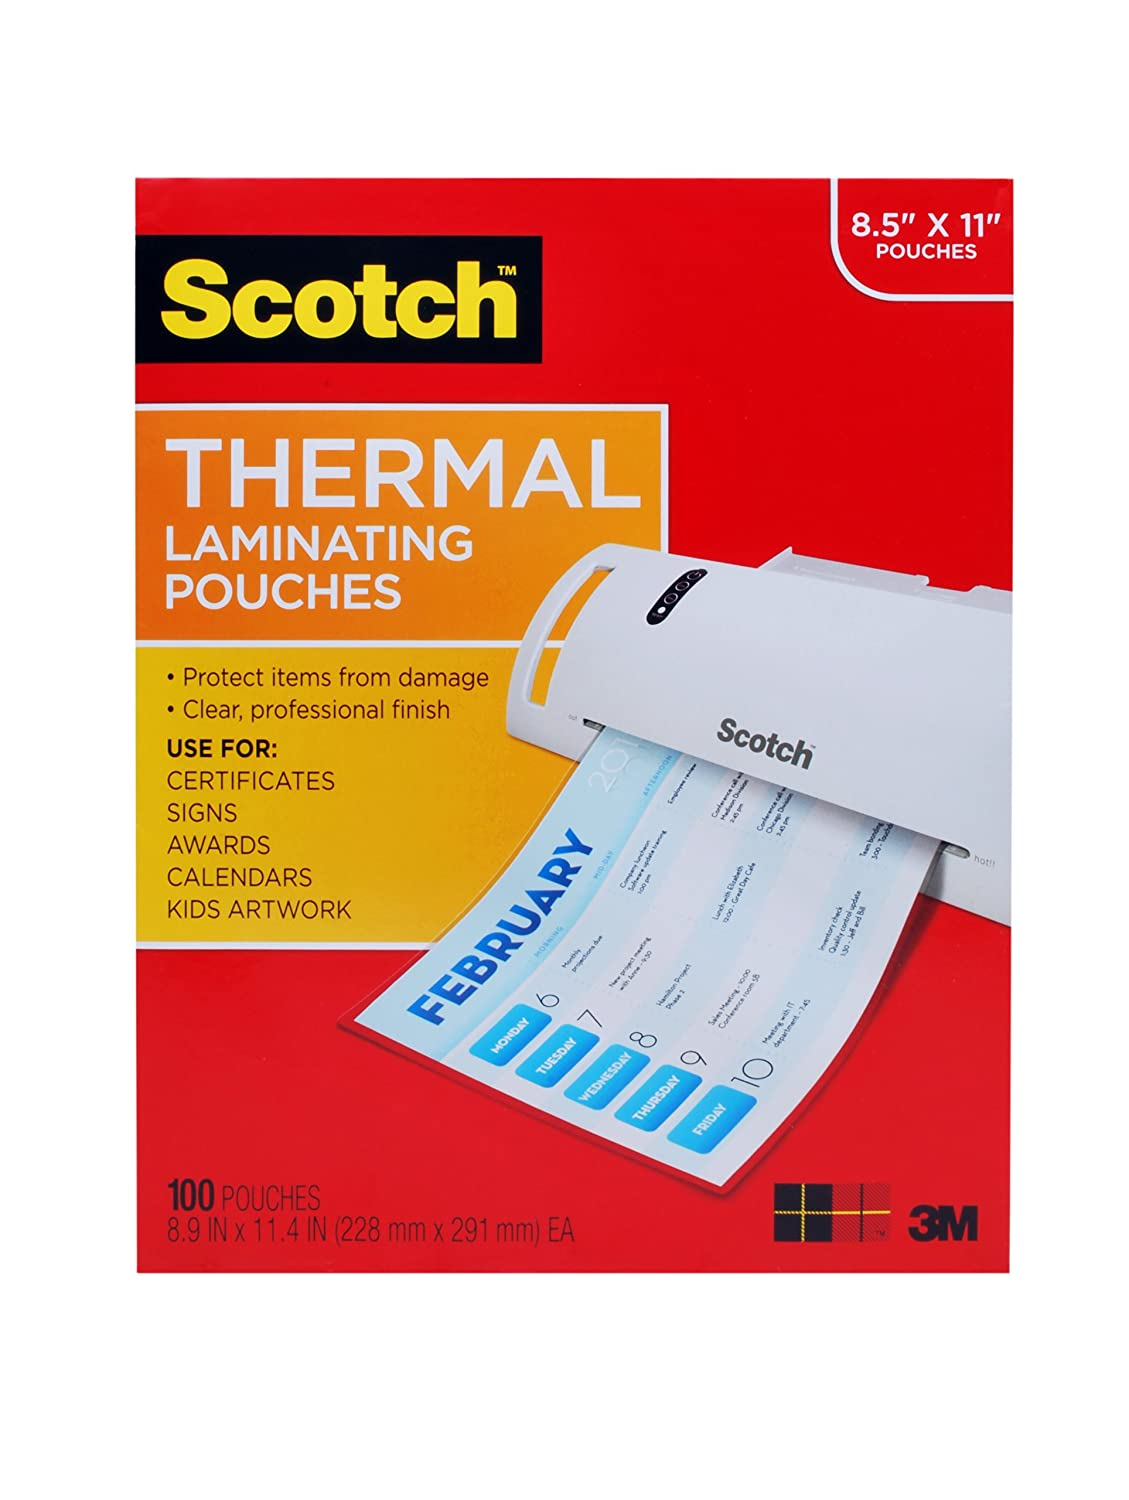 Scotch Thermal Laminating Pouches, 8.5 Inches x 11 Inches, 20 Pouches (TP3854-20) 8.5 Inches x 11 Inches 3M